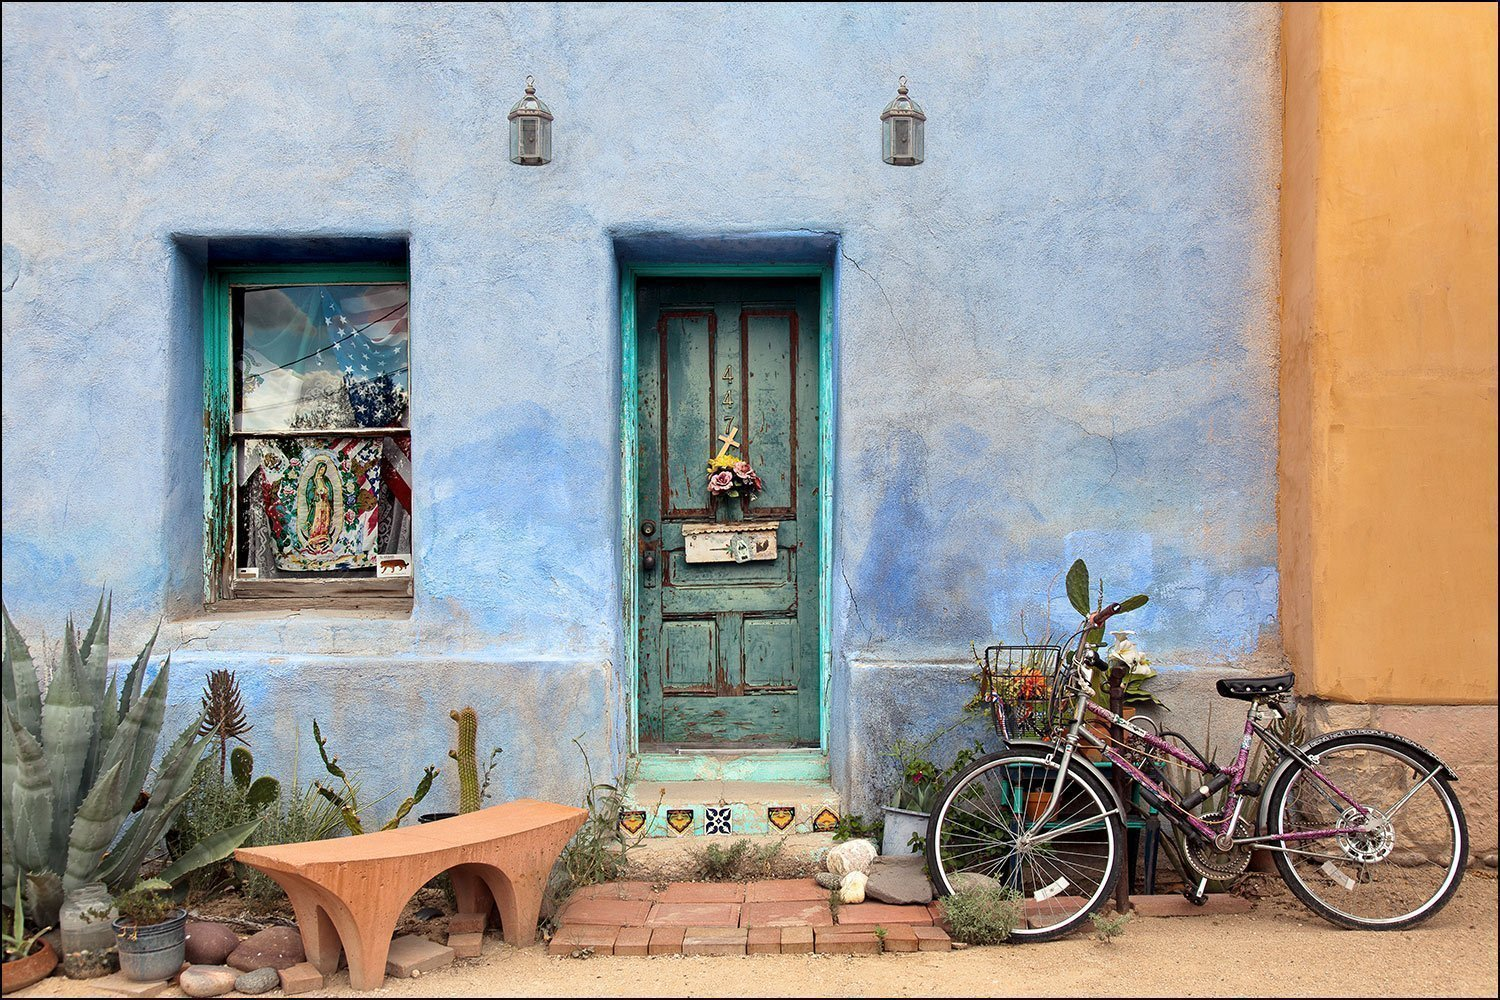 Photograph of colorful American Southwest urban scene with a green wood door, bike, cactus and blue adobe wall. Wall décor photography for over your couch or home artwork decorating needs.